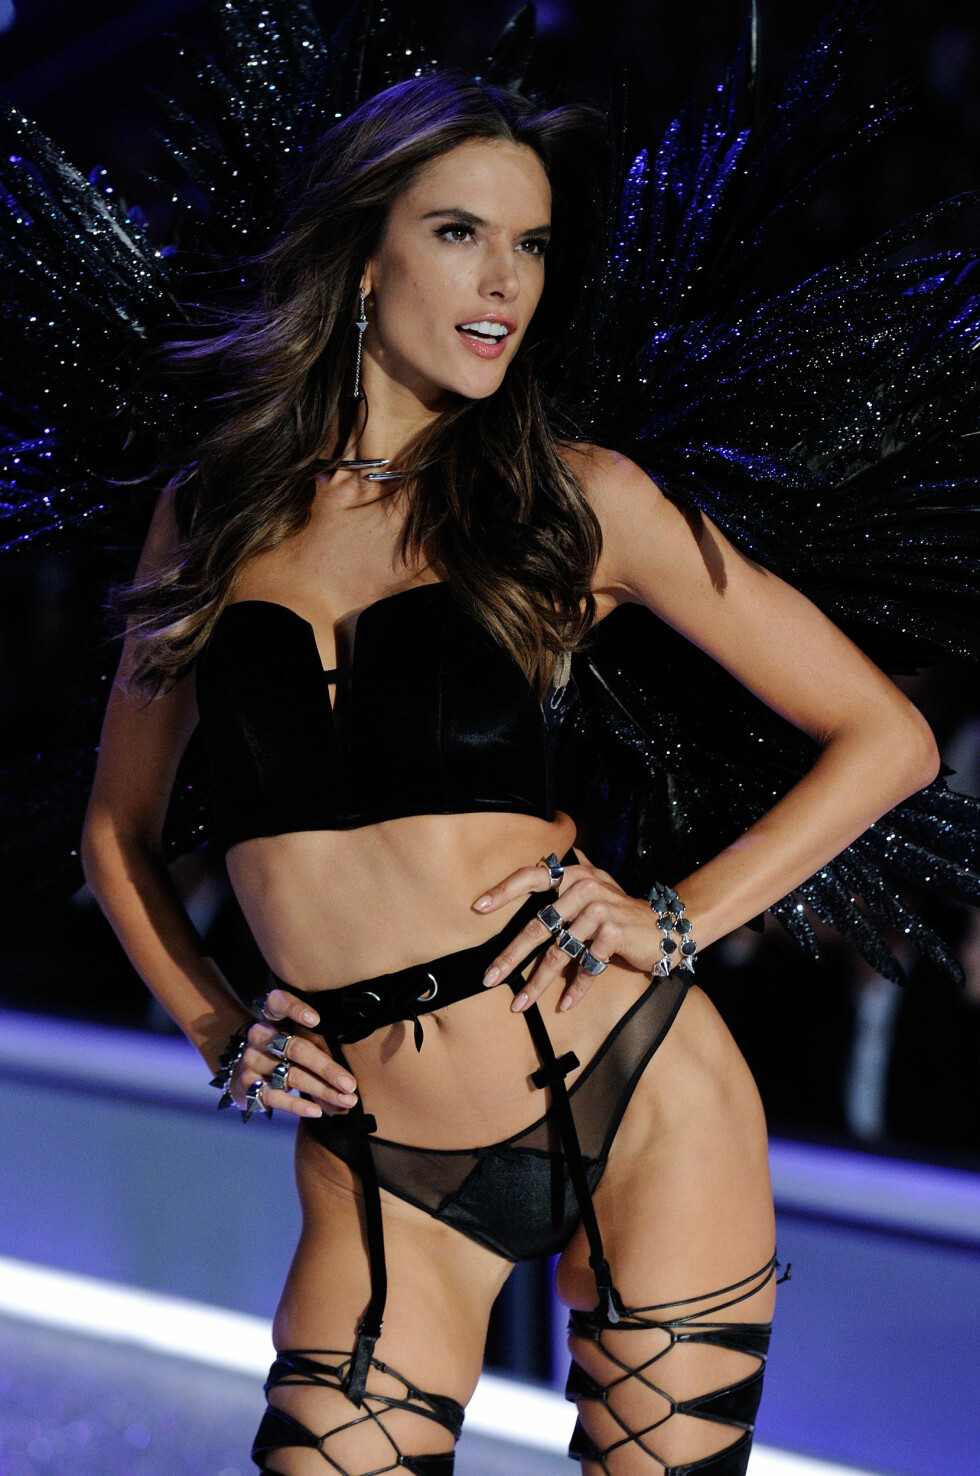 EDITORIAL USE ONLY. Alessandra Ambrosio walks on the runway at the Victoriaâä™s Secret Fashion Show at the Grand Palais on November 30, 2016 in Paris, France. Photo by Marechal/Domine/Zabulon/ABACAPRESS.COM